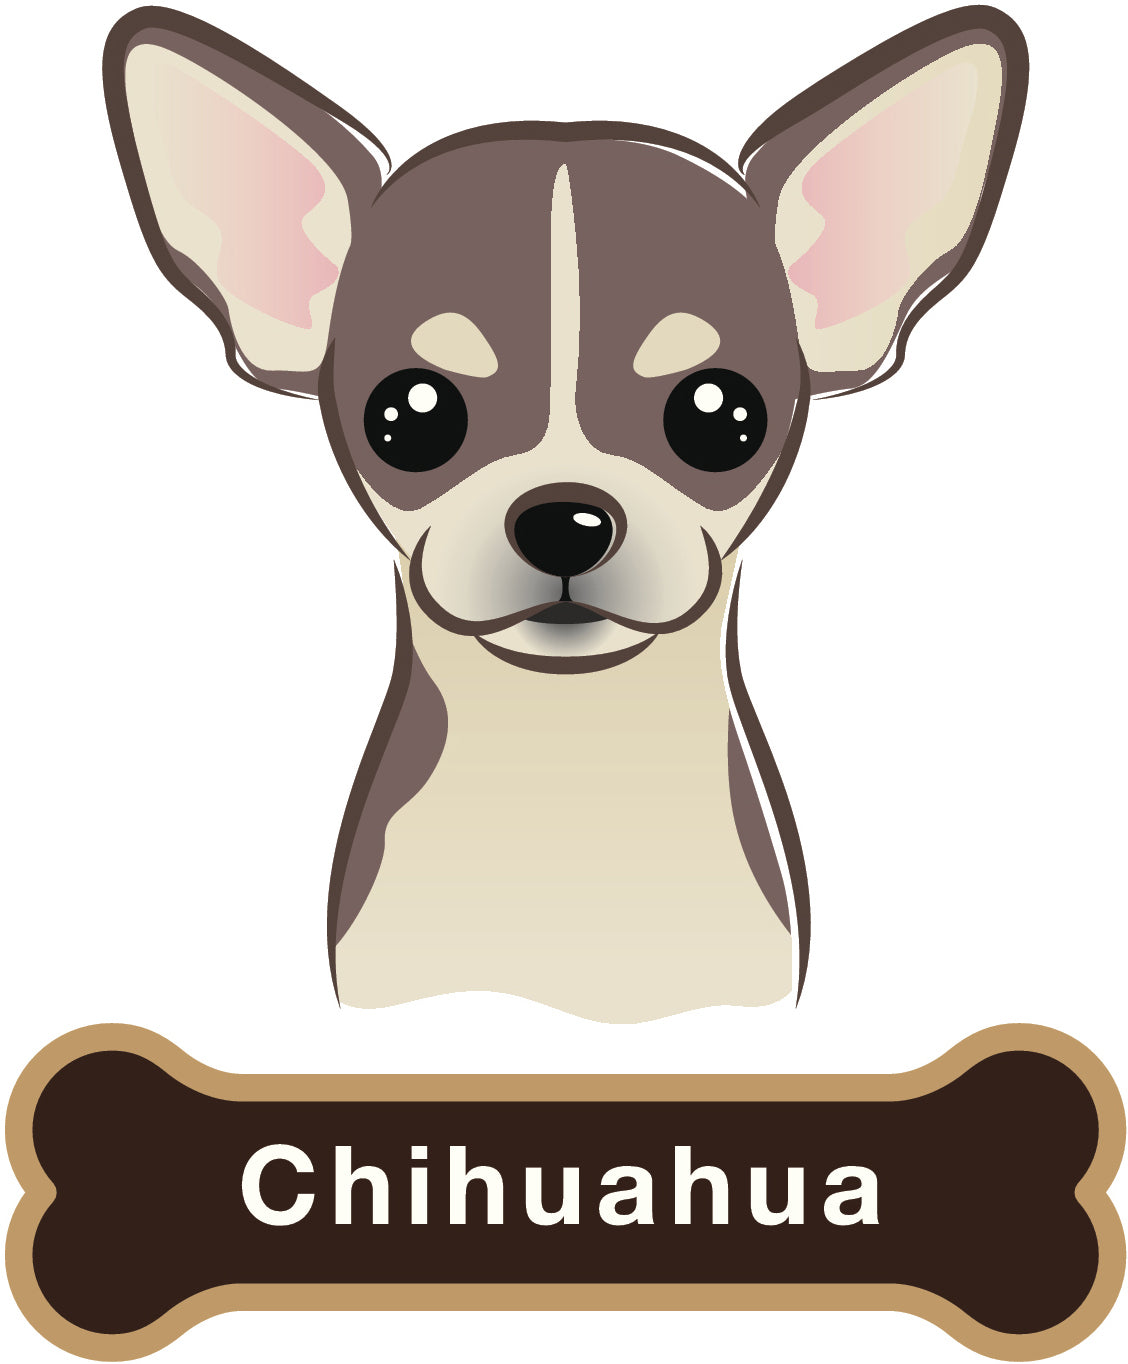 Cute Chihuahua Dog Vinyl Decal Sticker